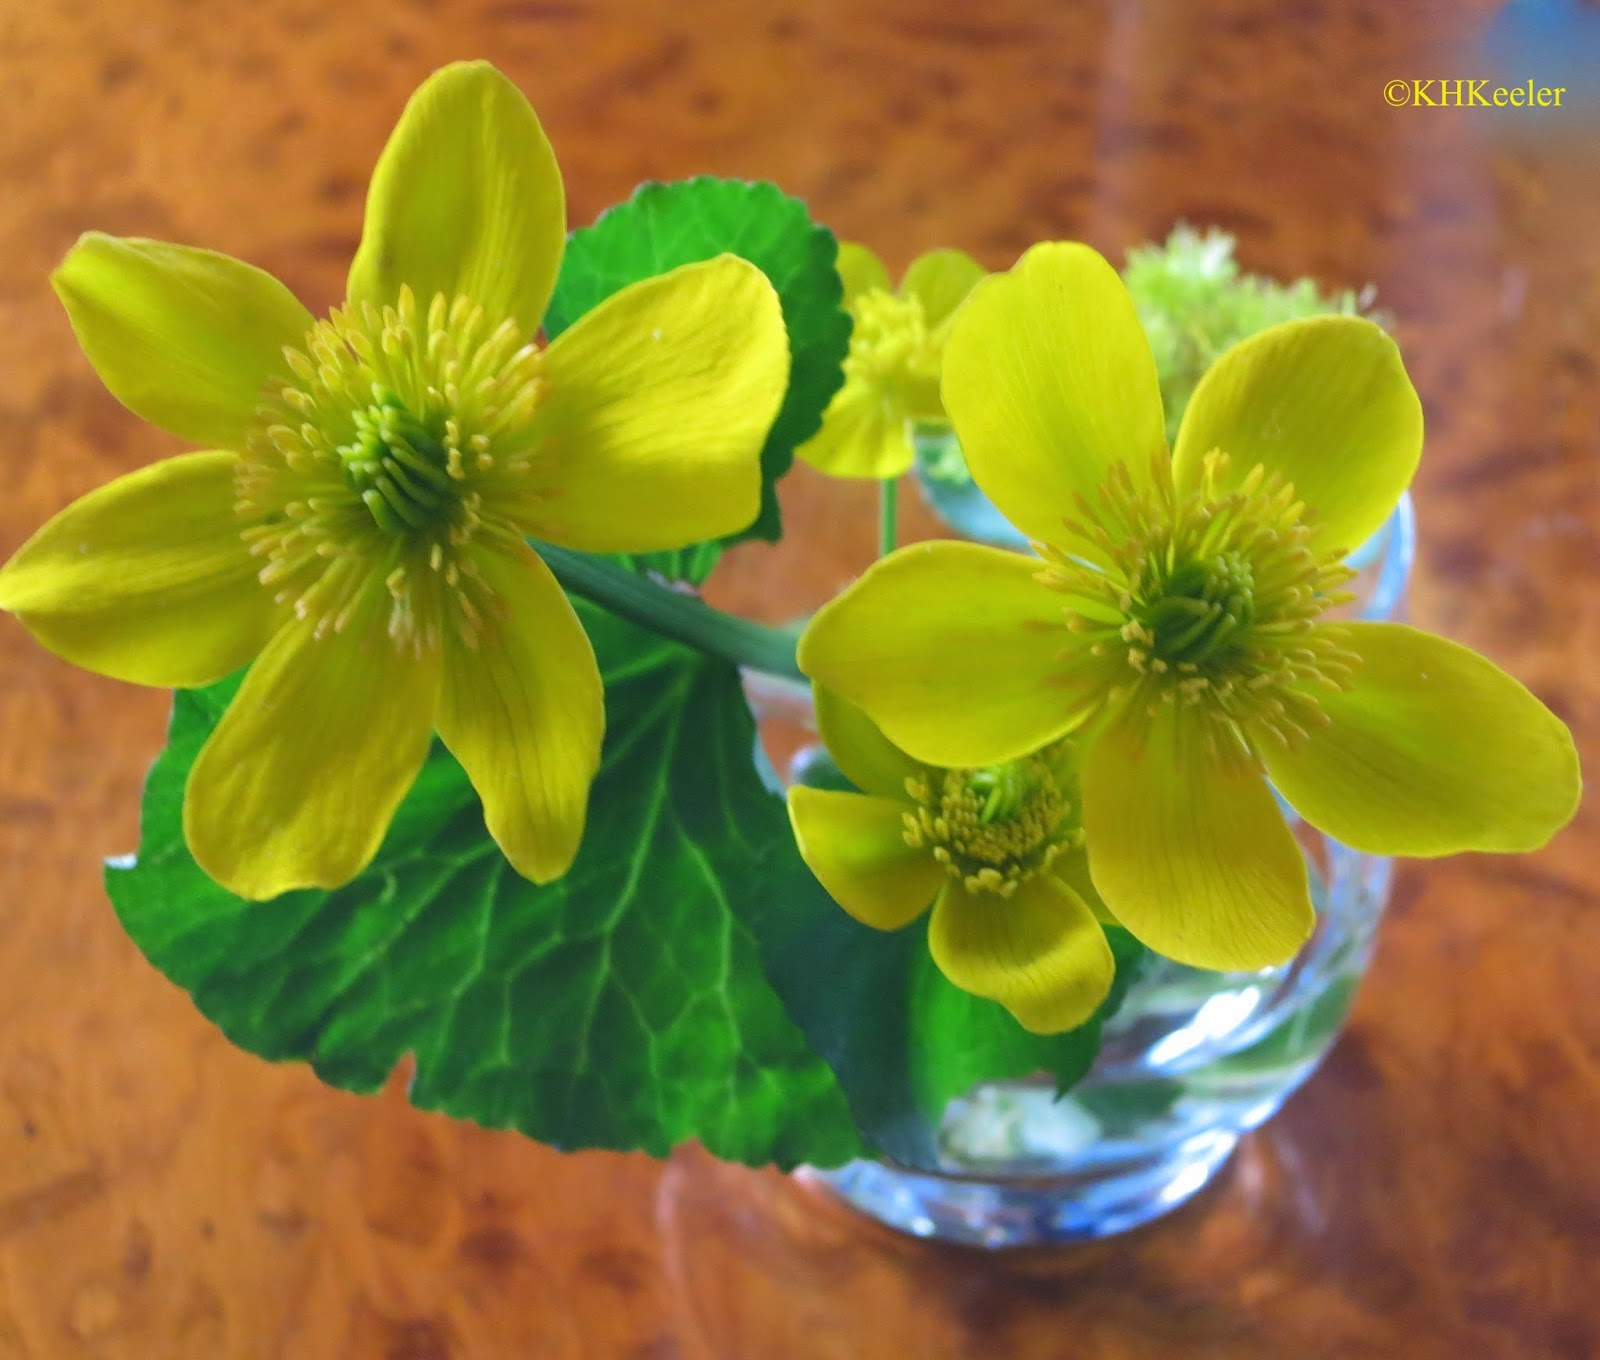 marsh marigolds in a glass